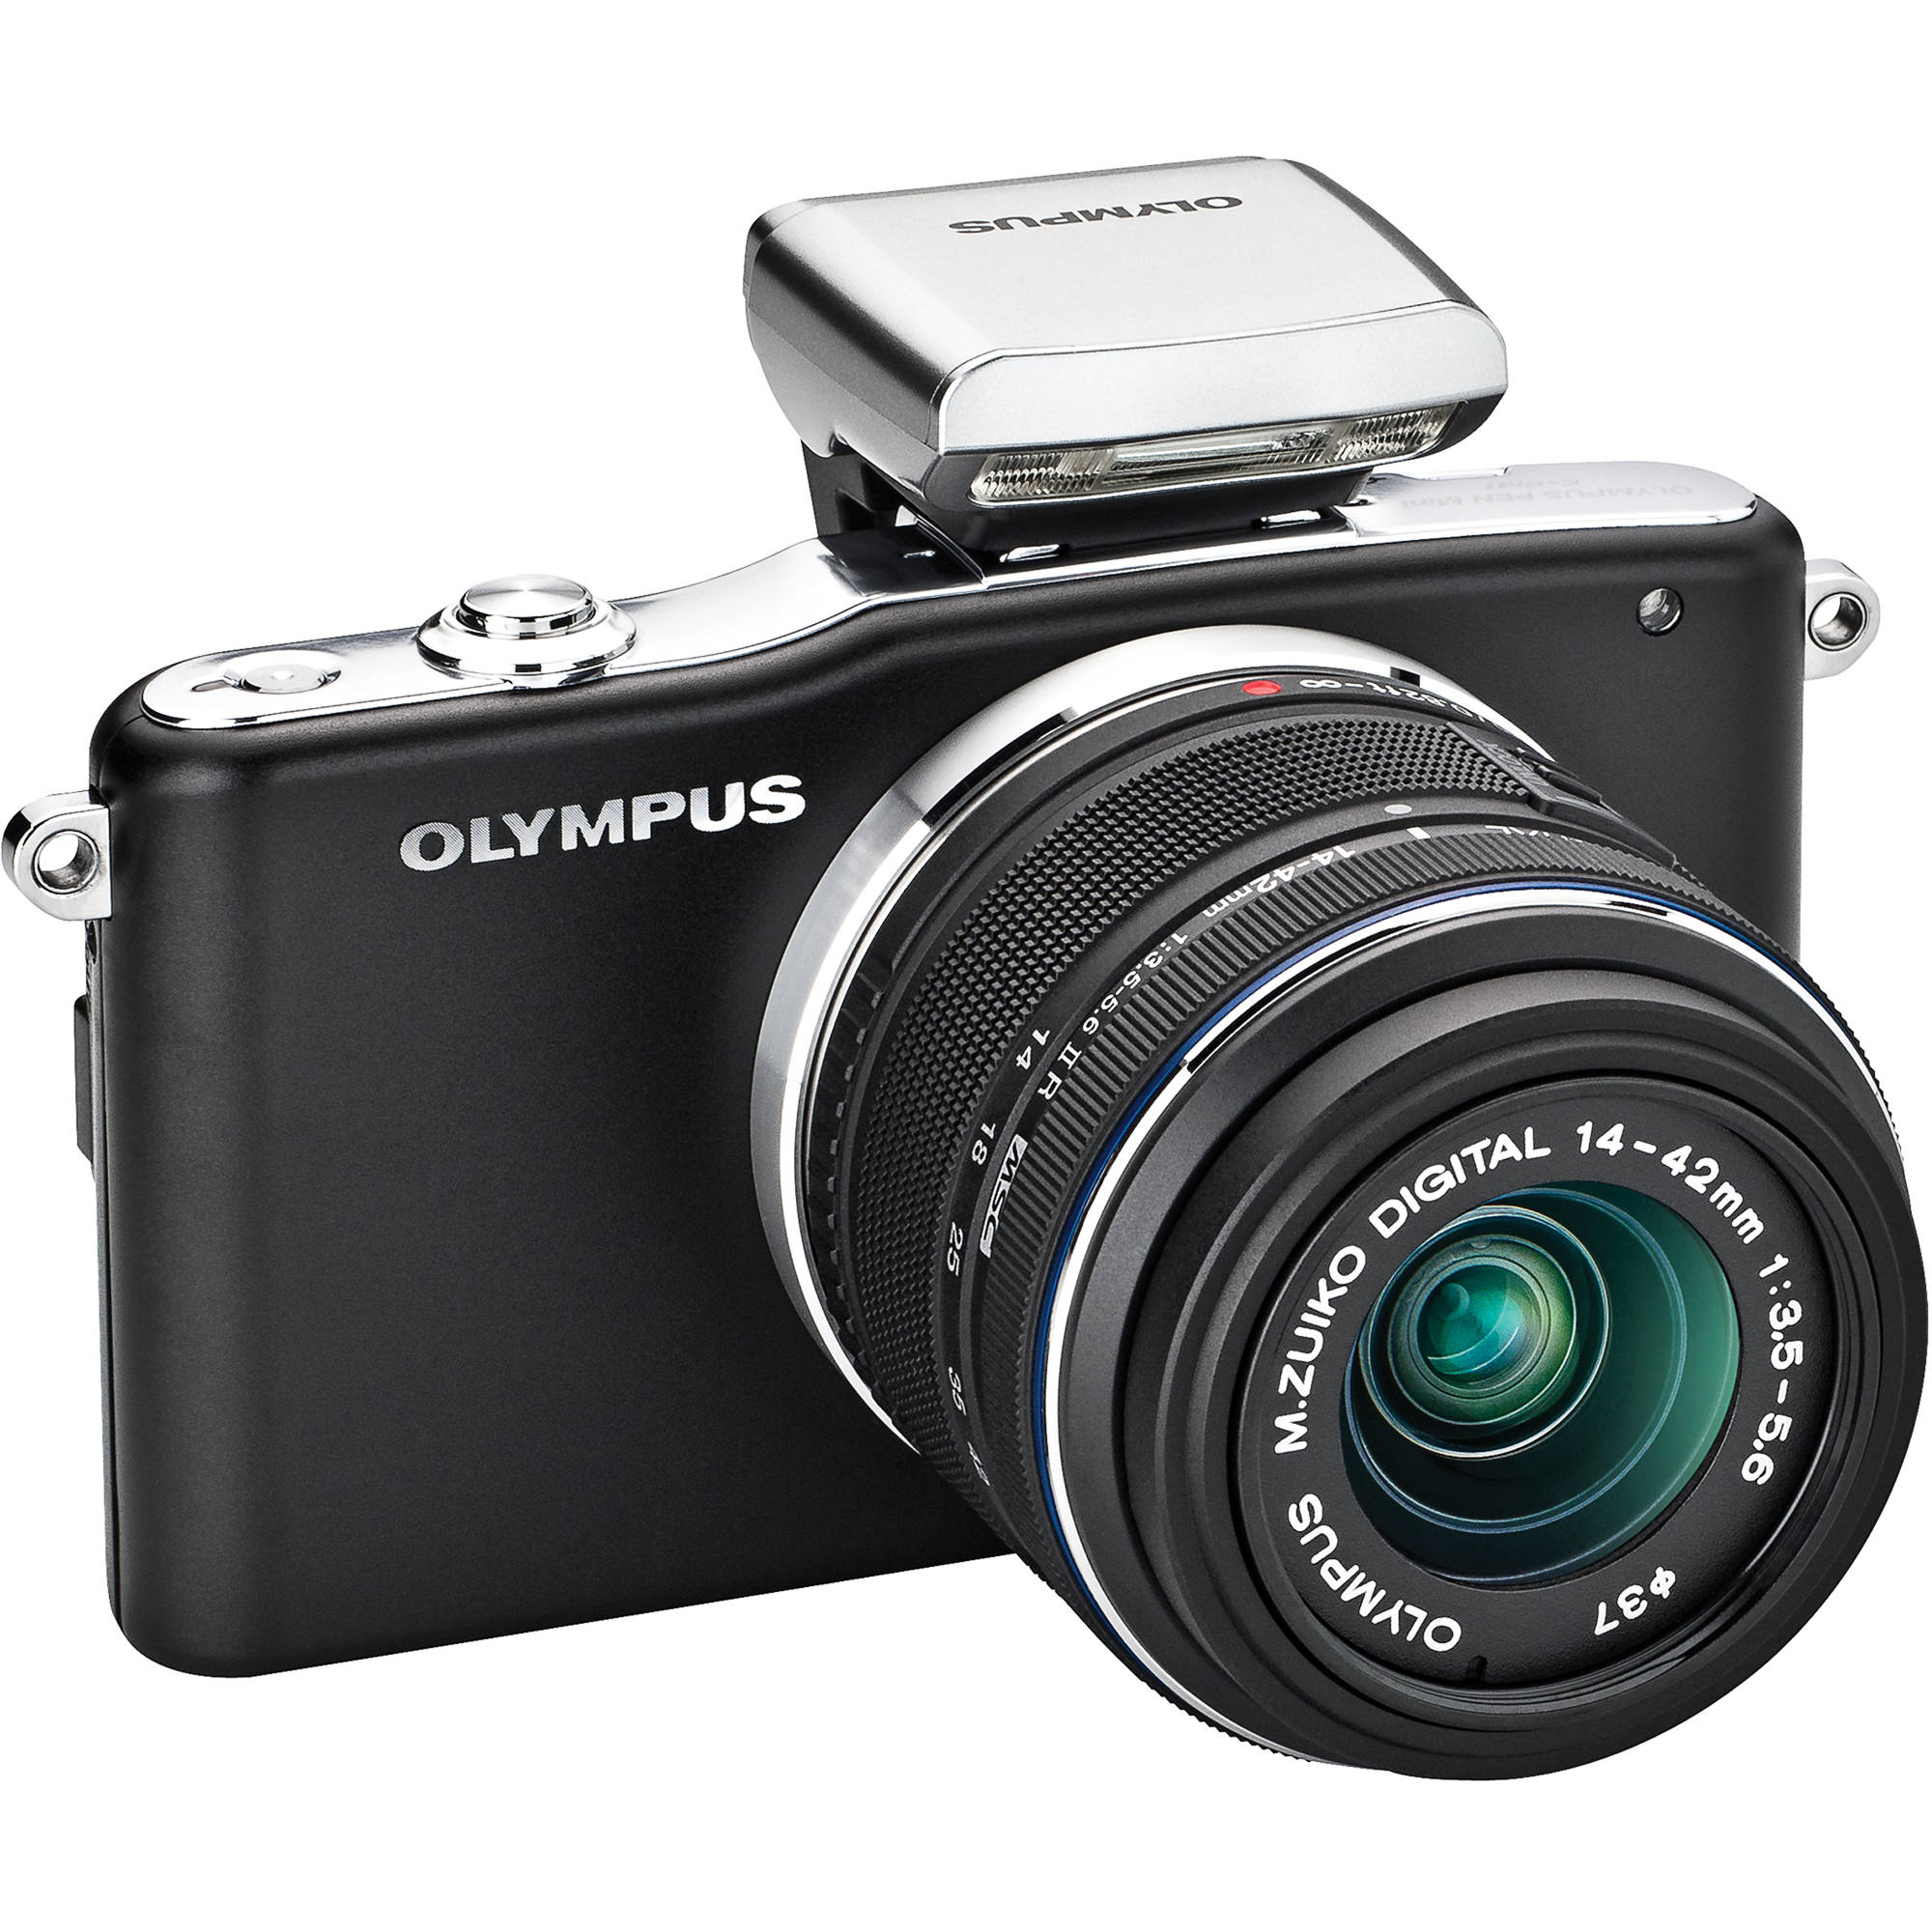 Olympus e pm1 mirrorless micro four thirds digital camera with 14 42mm